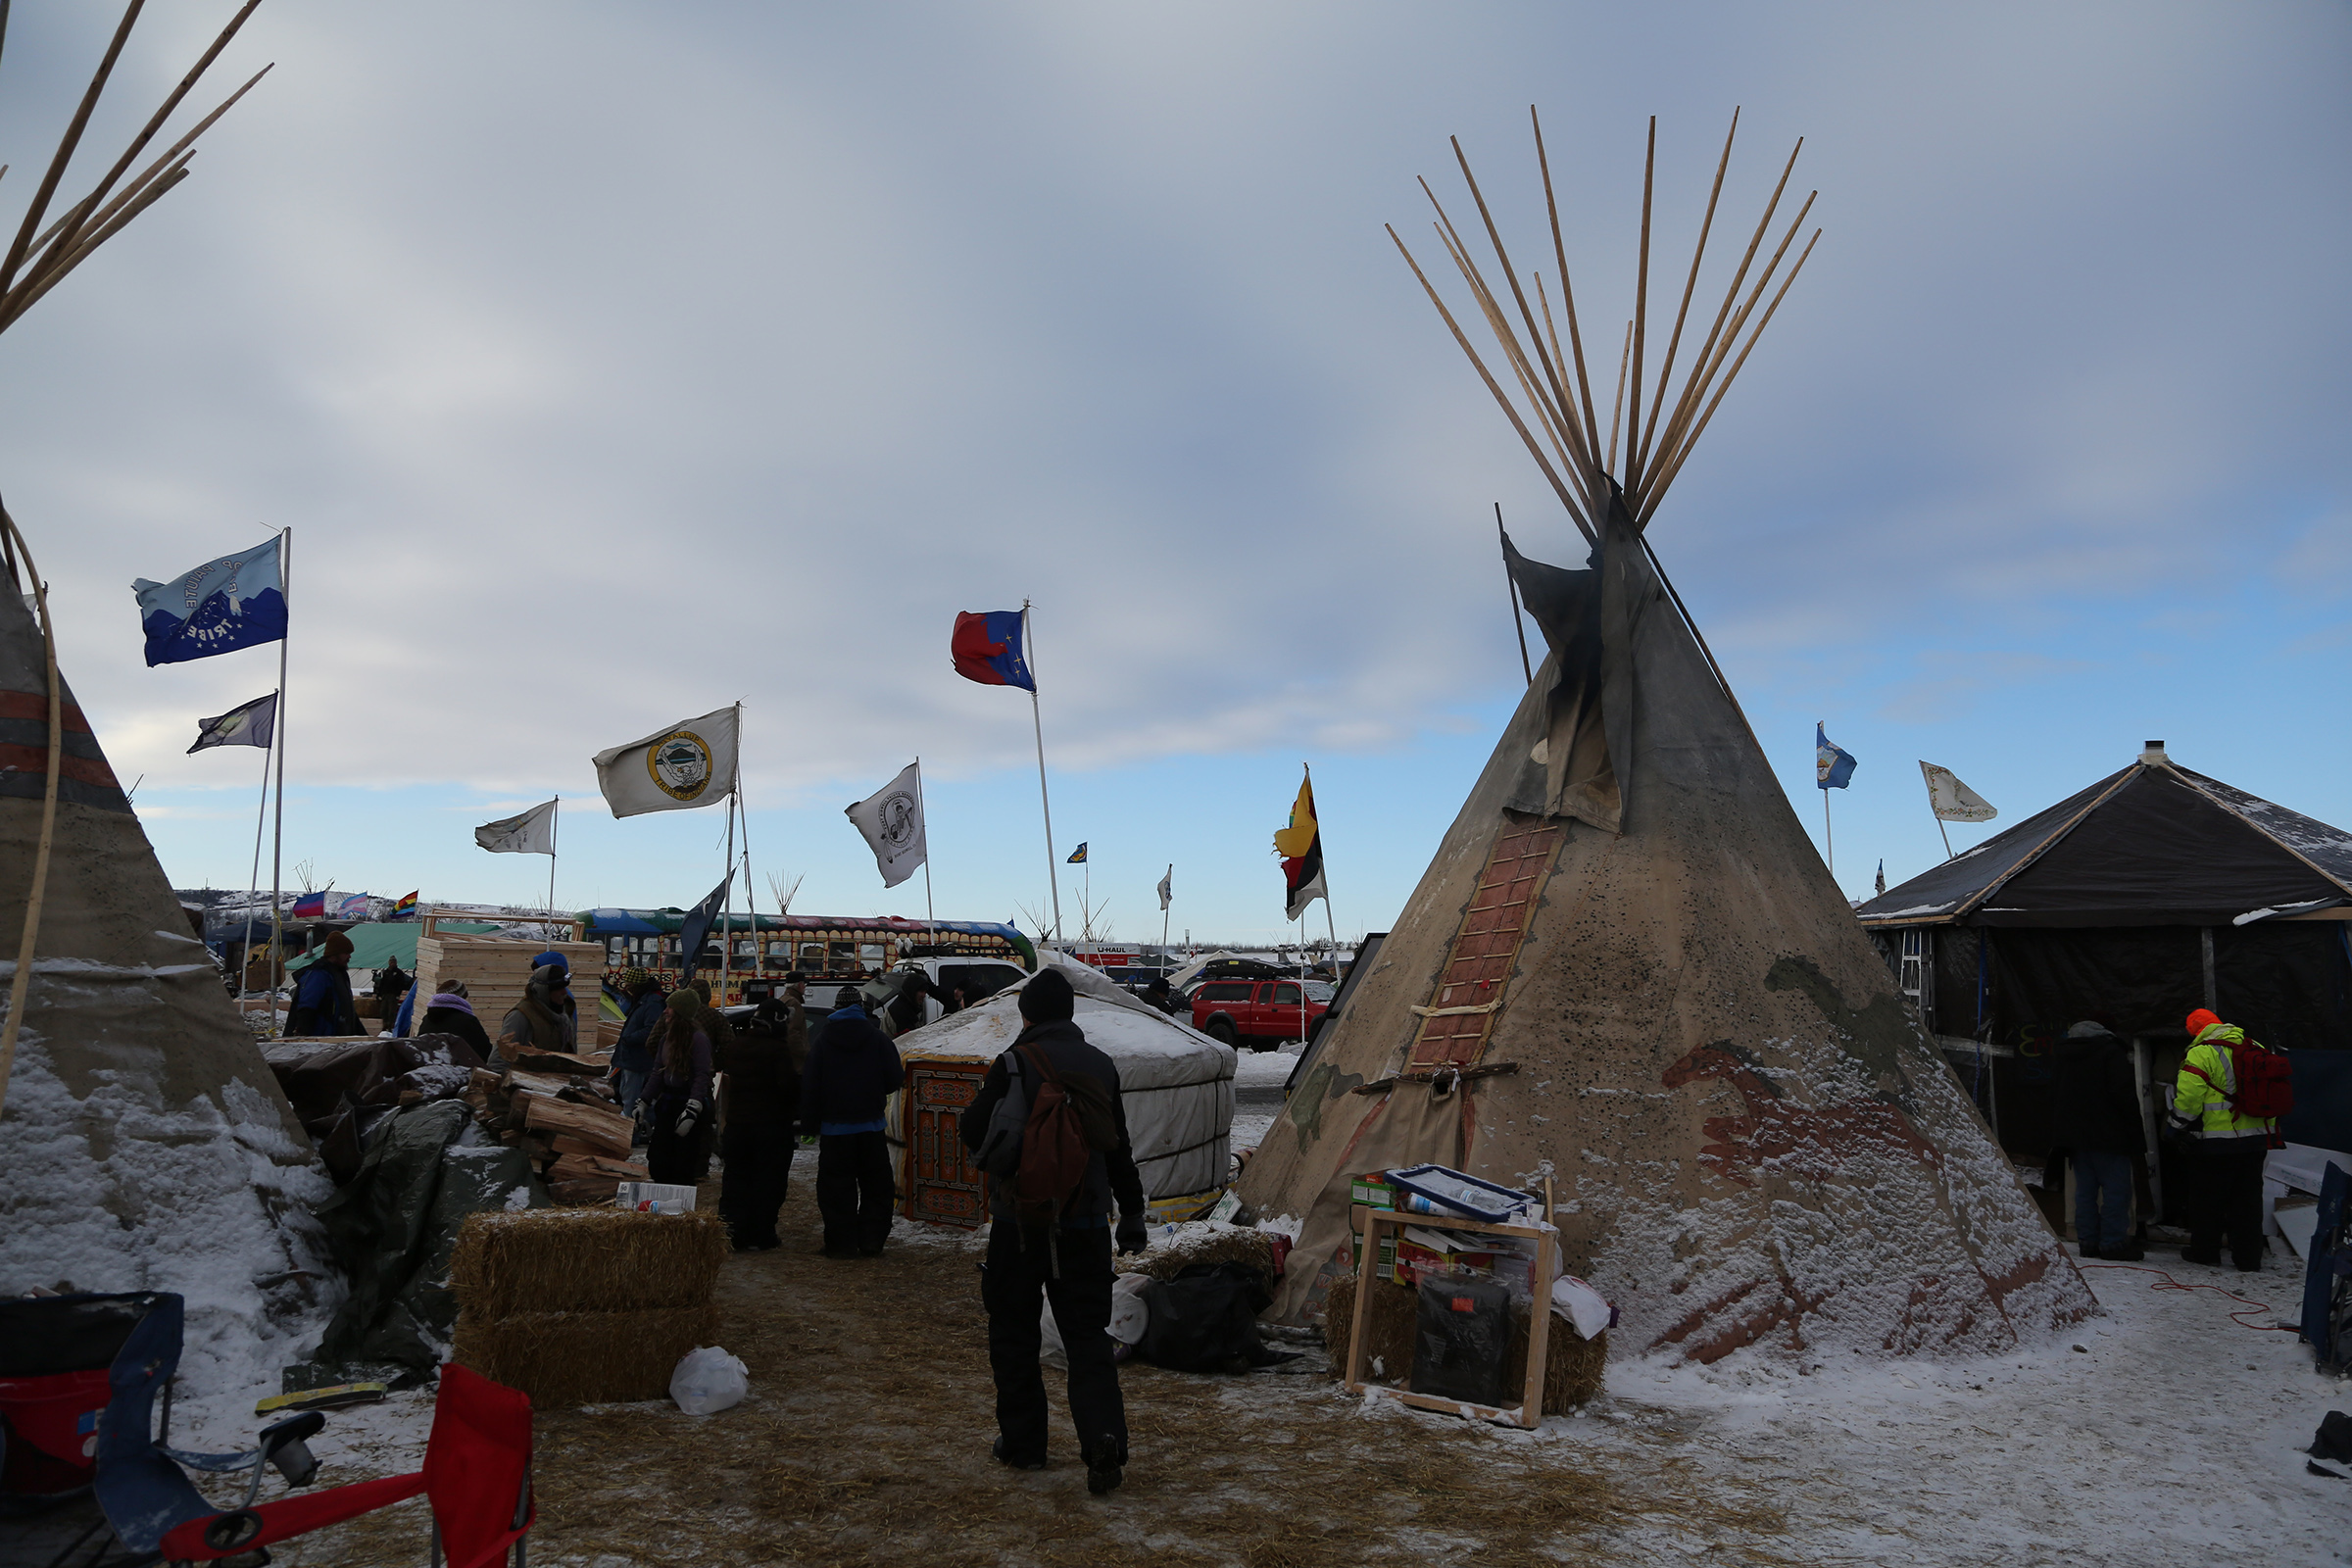 The Standing Rock camps during the protest of the Dakota Access Pipeline.